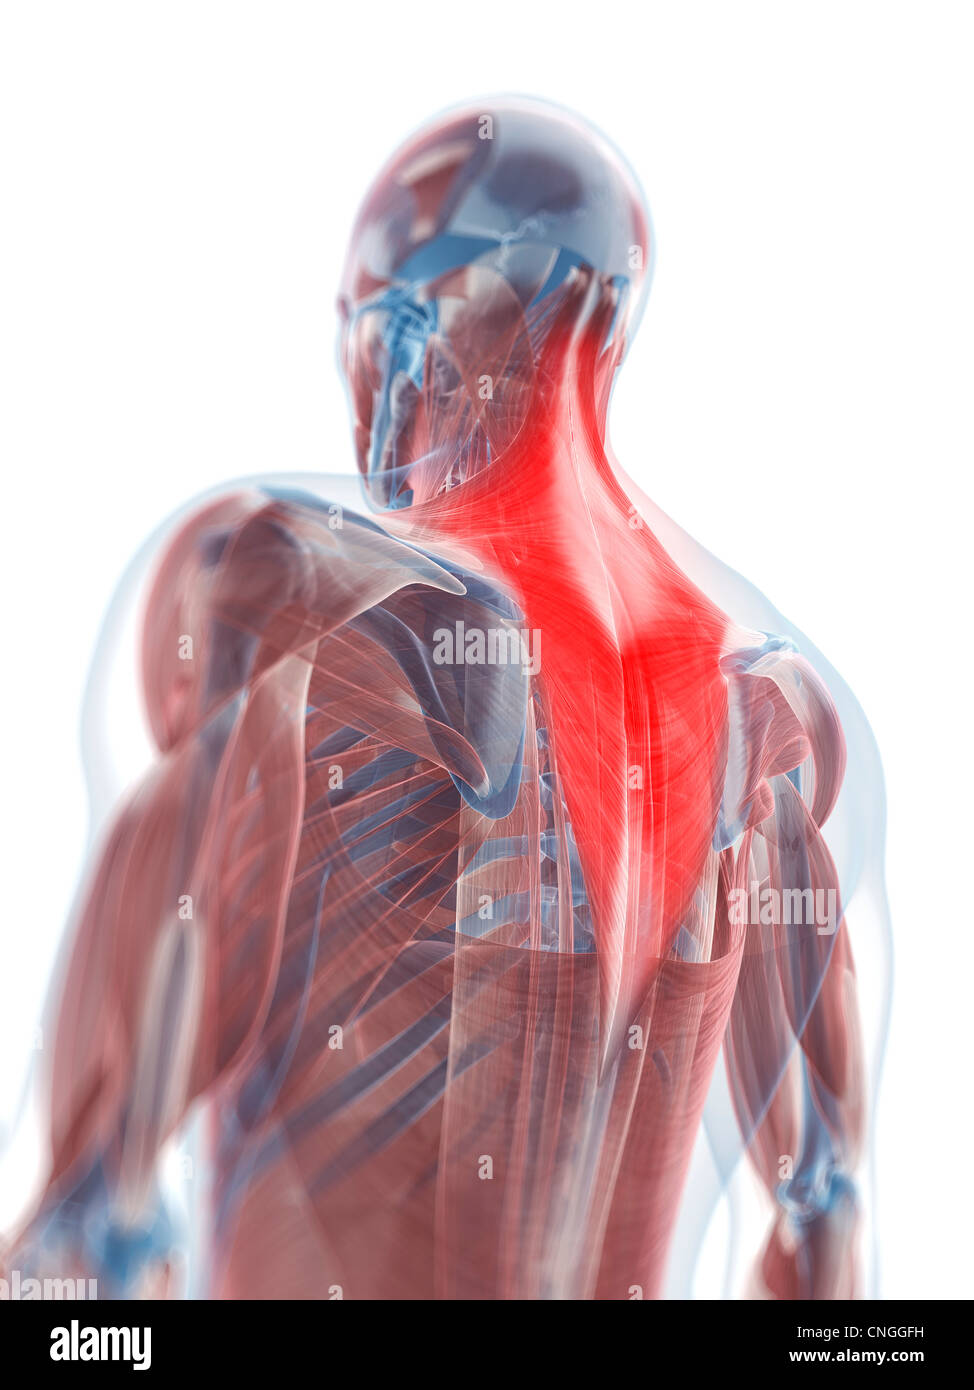 Trapezius muscle  artwork - Stock Image